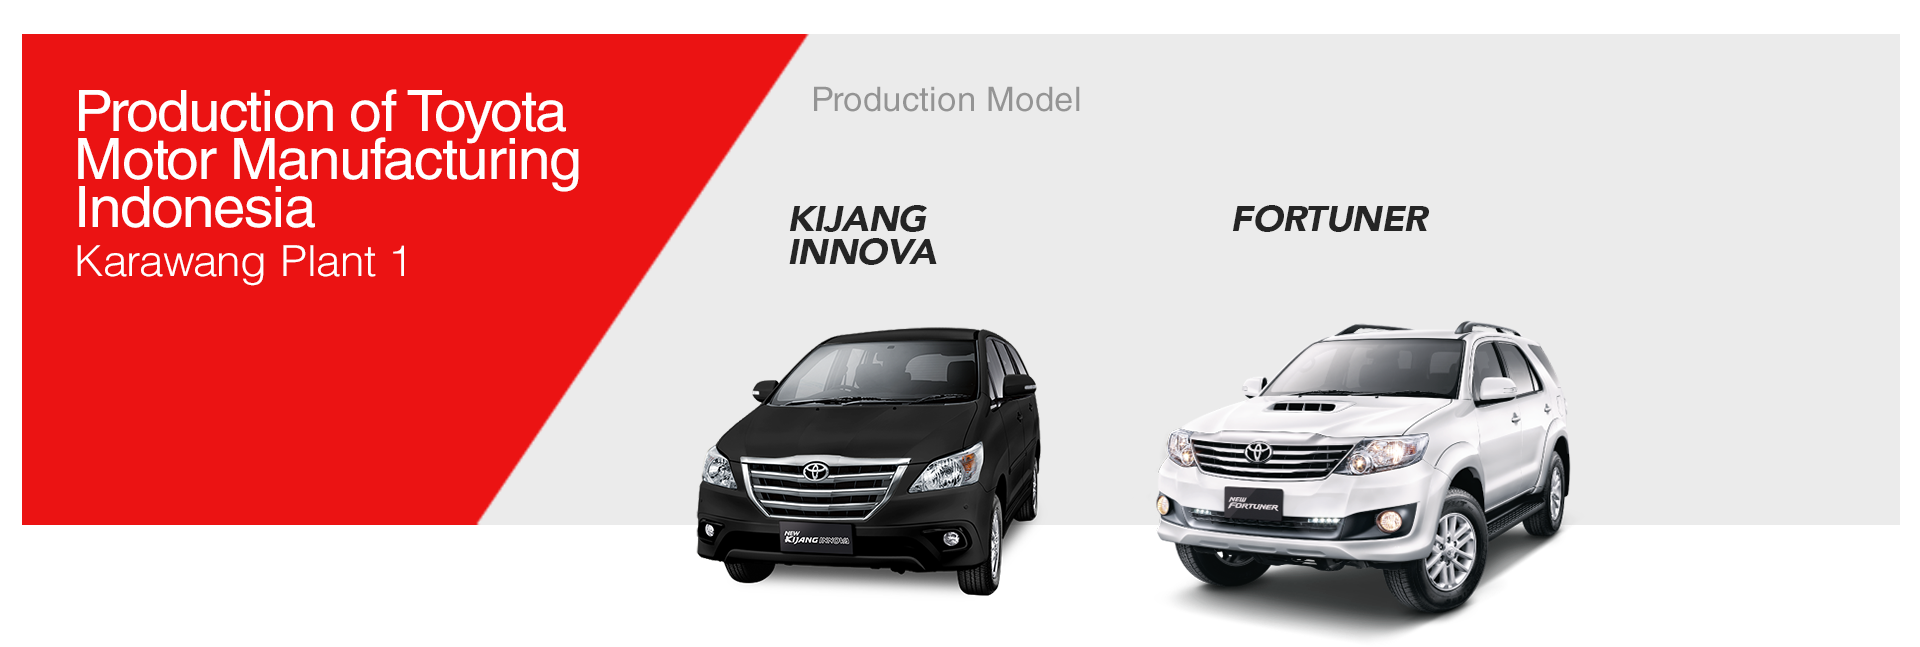 Toyota-car-production-in-indonesia-by-toyota-group-(1).png